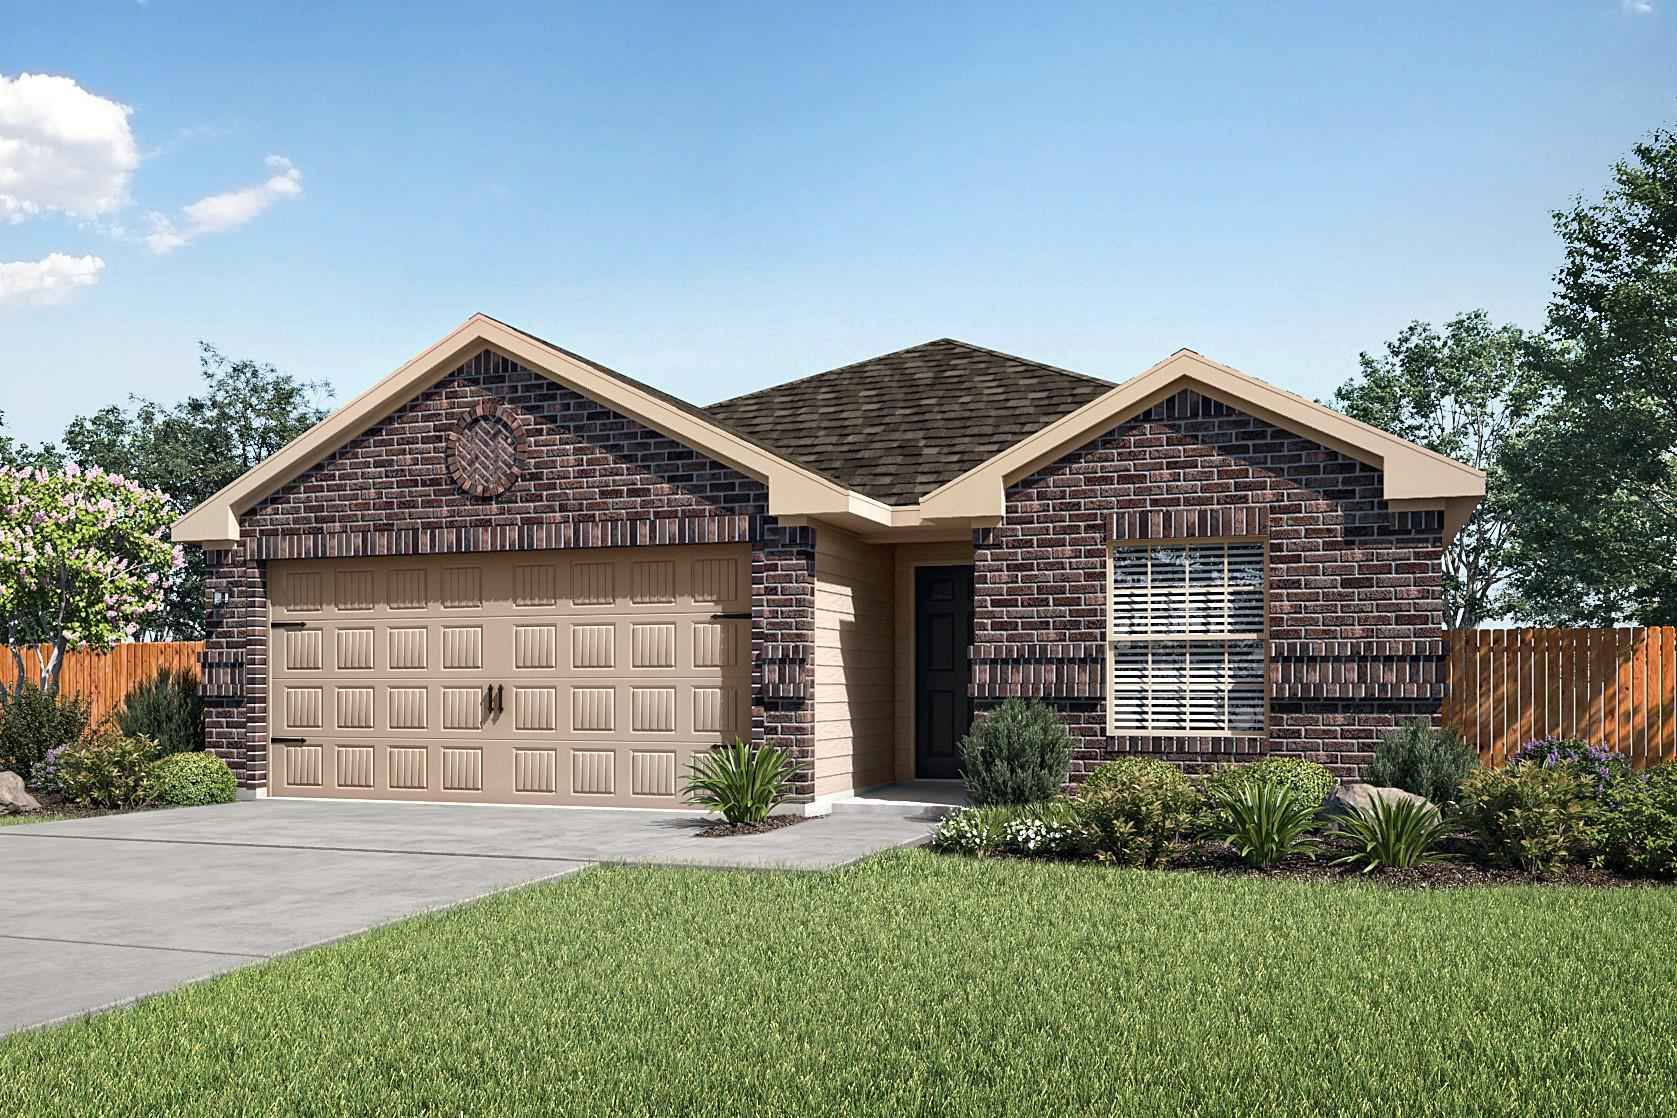 The Frio by LGI Homes:The gorgeous Frio is now available at Sonterra!